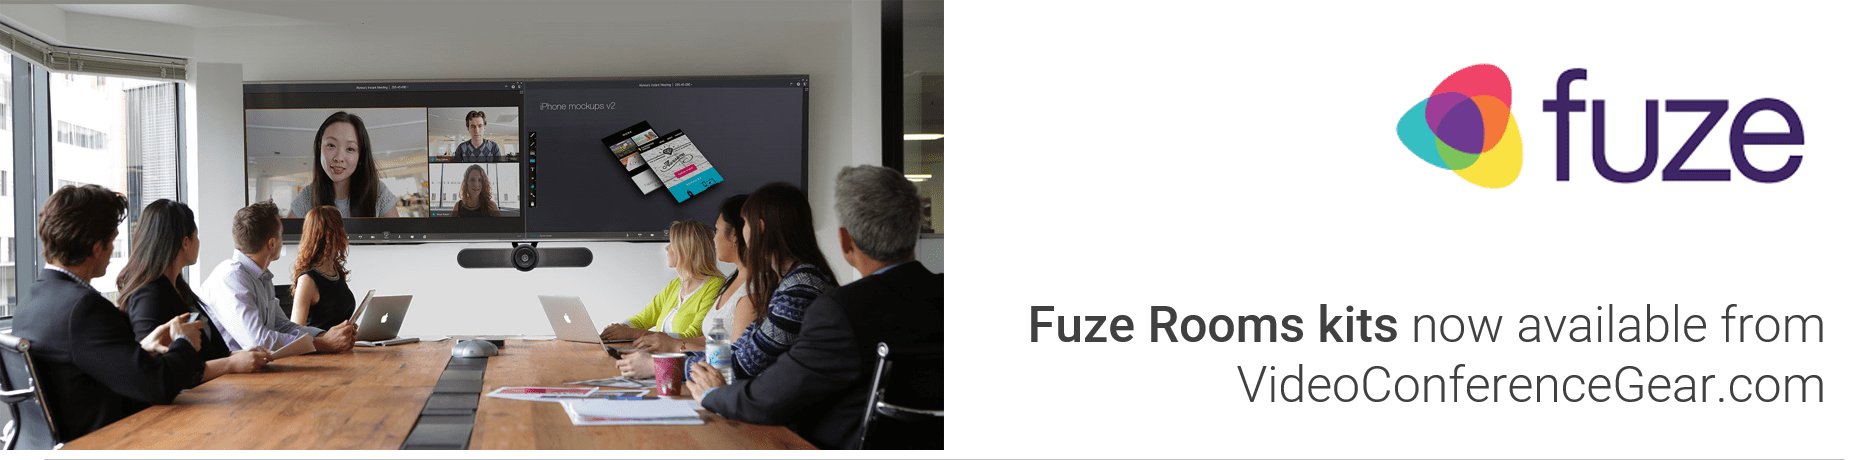 Fuze Rooms Kits by VideoConferenceGear.com